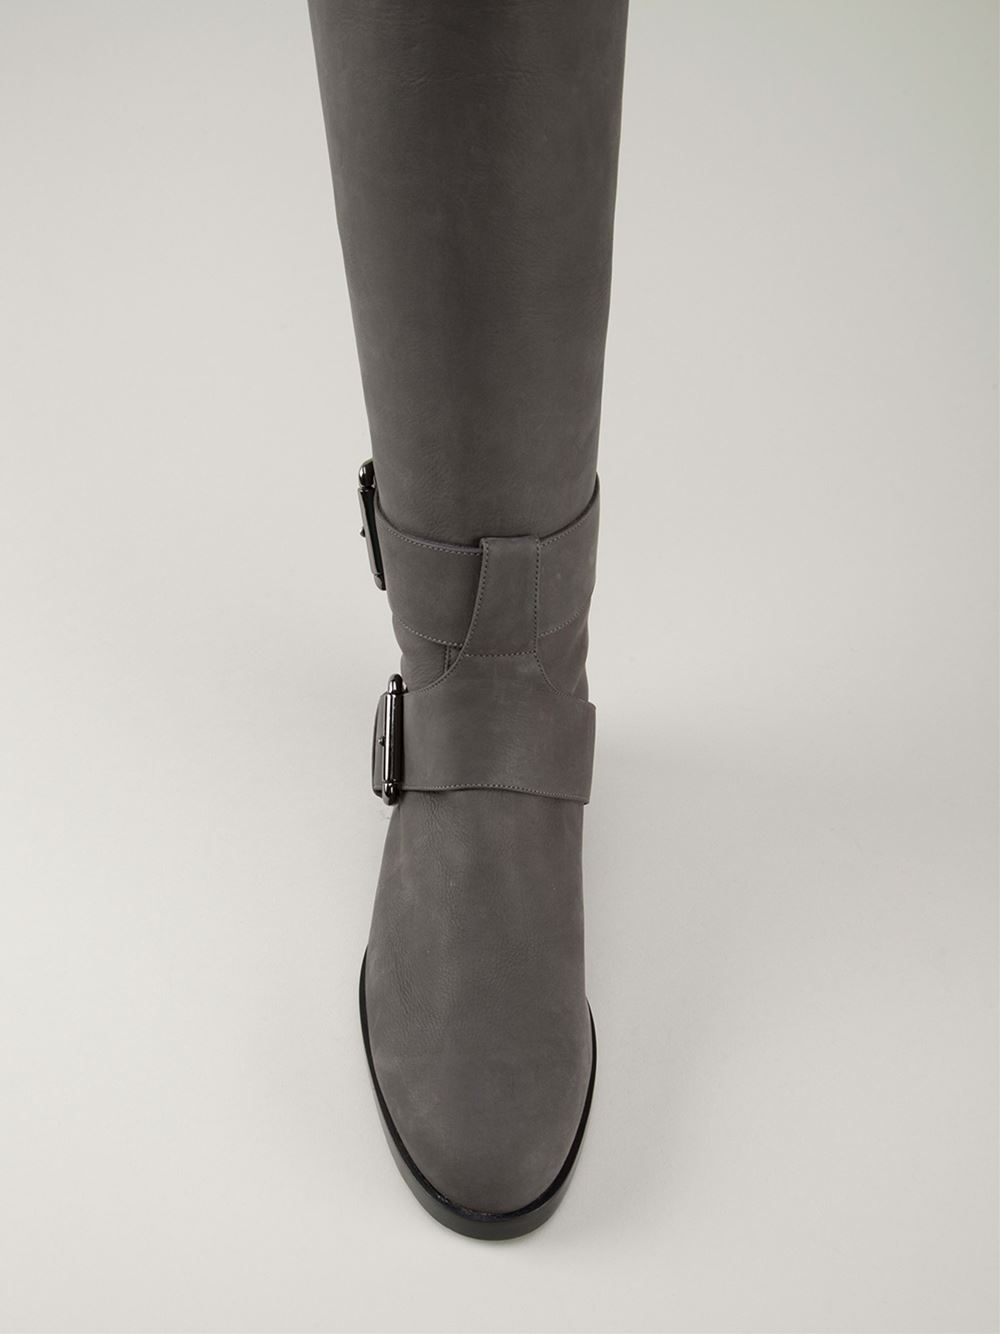 Forzieri Hogan Pierre Hardy Buckled Knee High Boots In Gray (grey) | Lyst